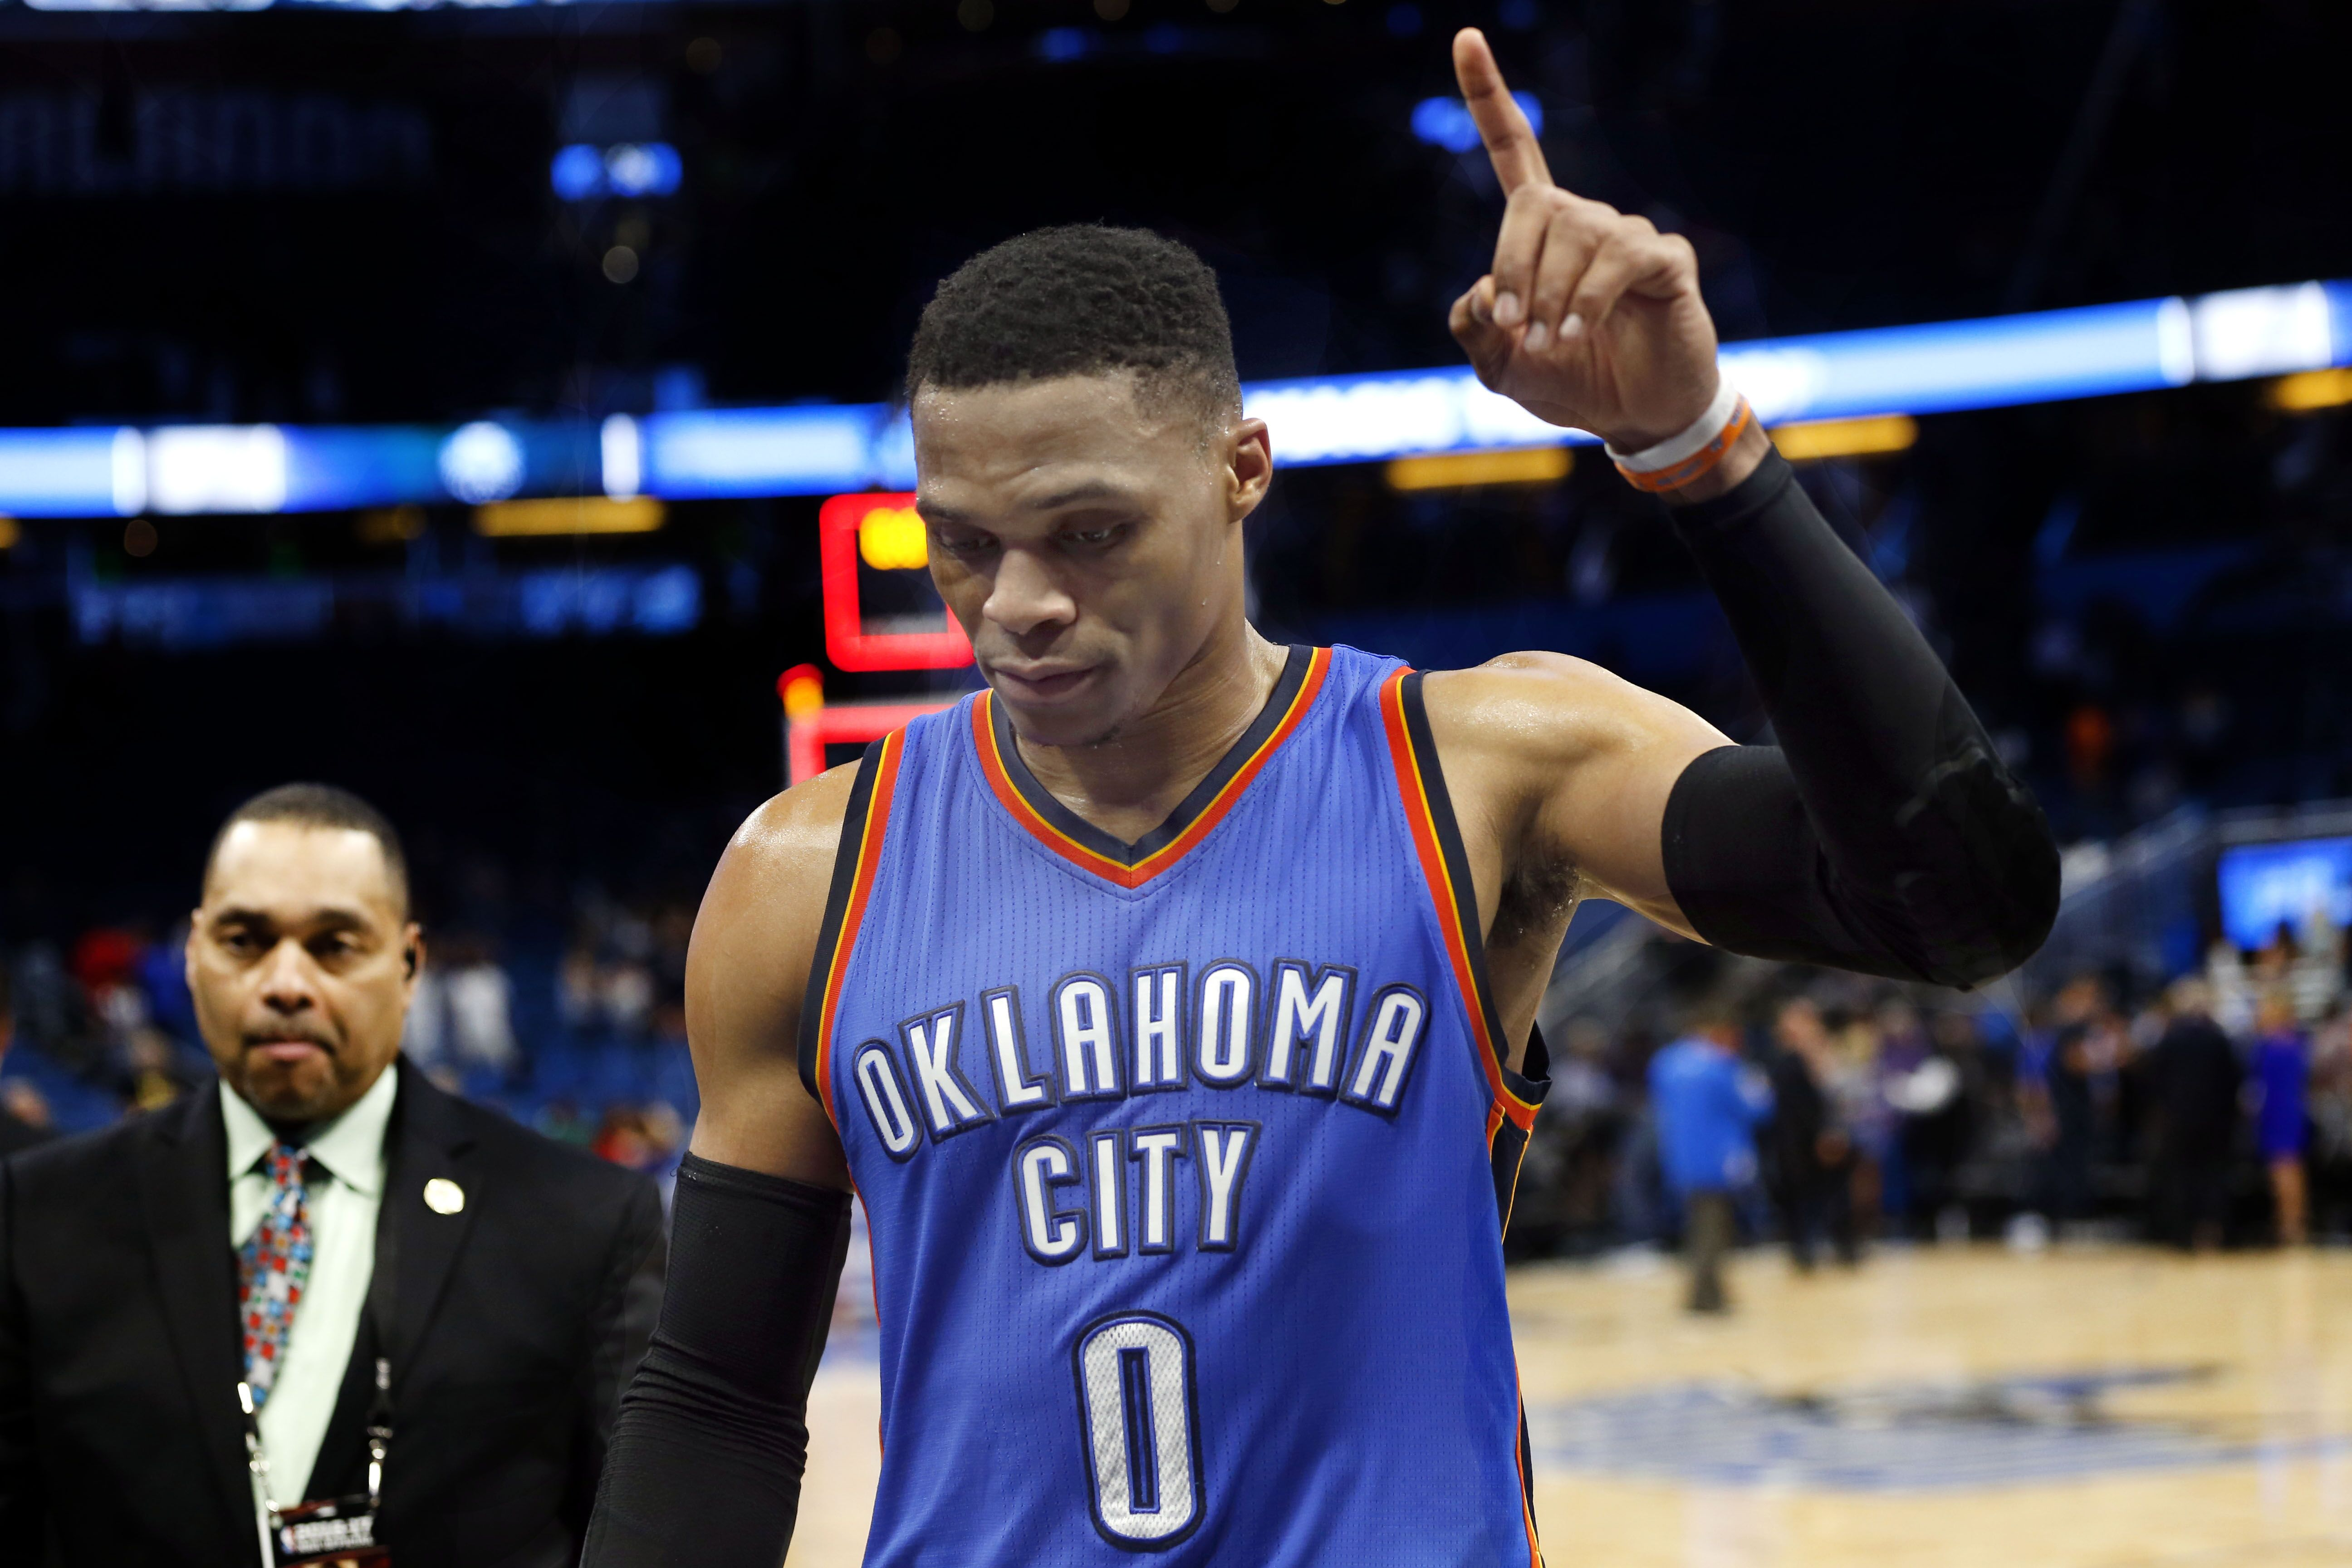 OKC Thunder Sunday Social Swag and Shade: The People's Champion, Edition 7